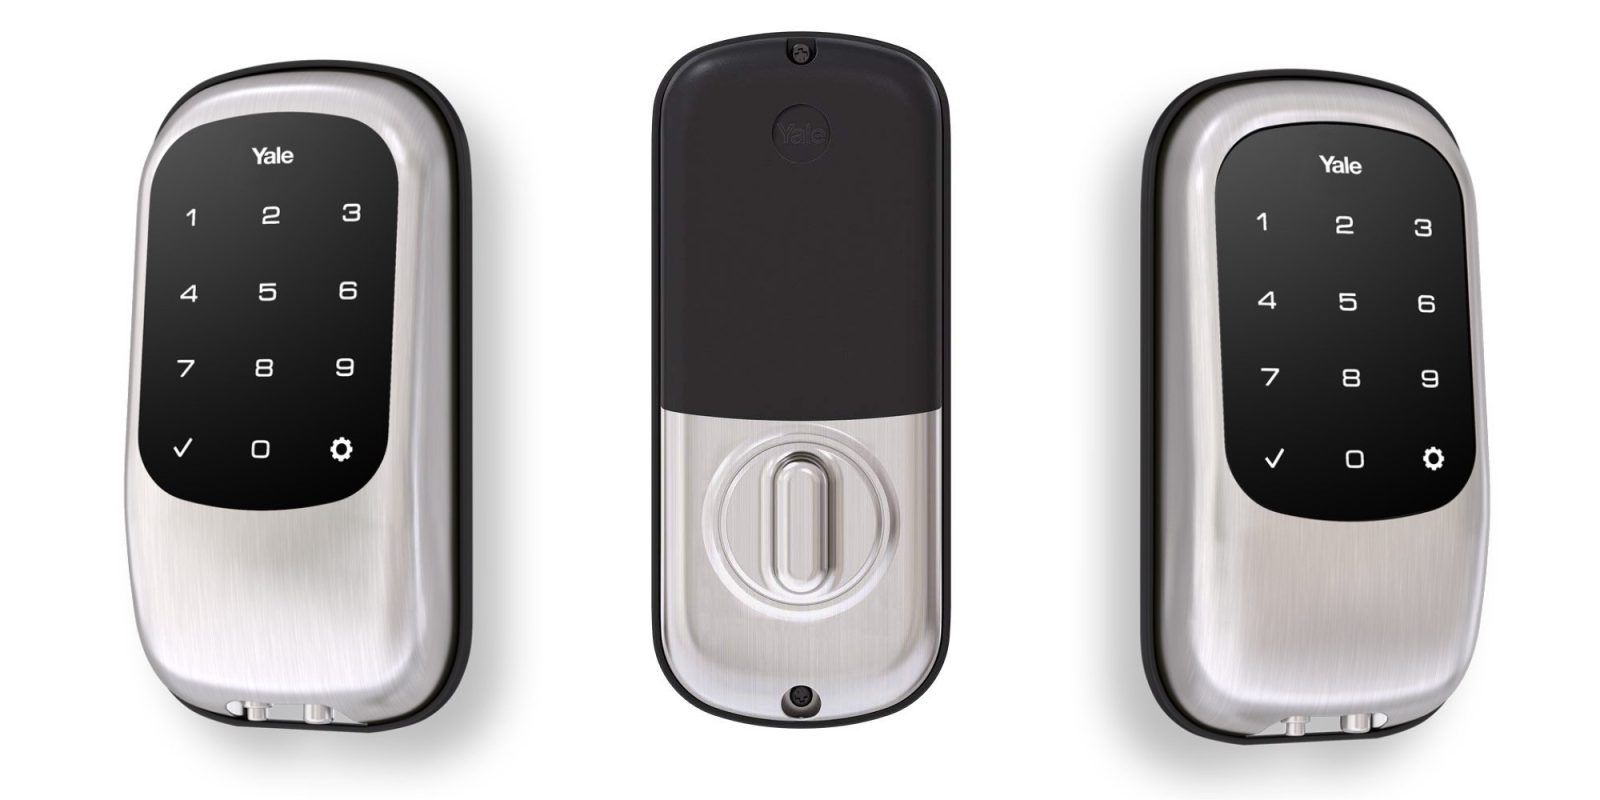 Yale's $170 Z-Wave Touchscreen Smart Lock is now at its best price this year